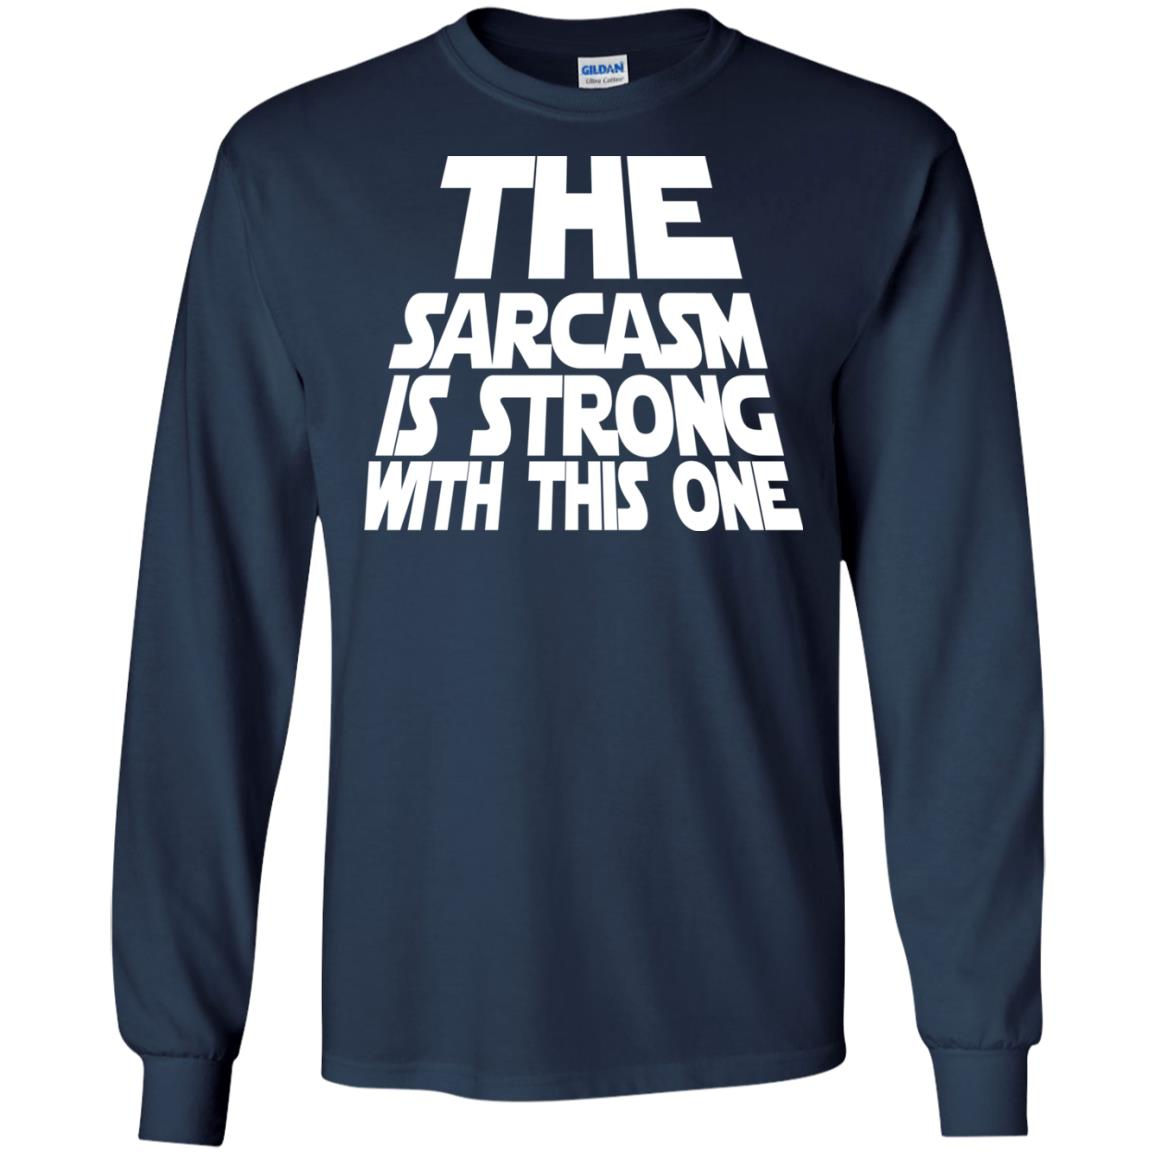 image 1795 - The Sarcasm is strong with this one shirt